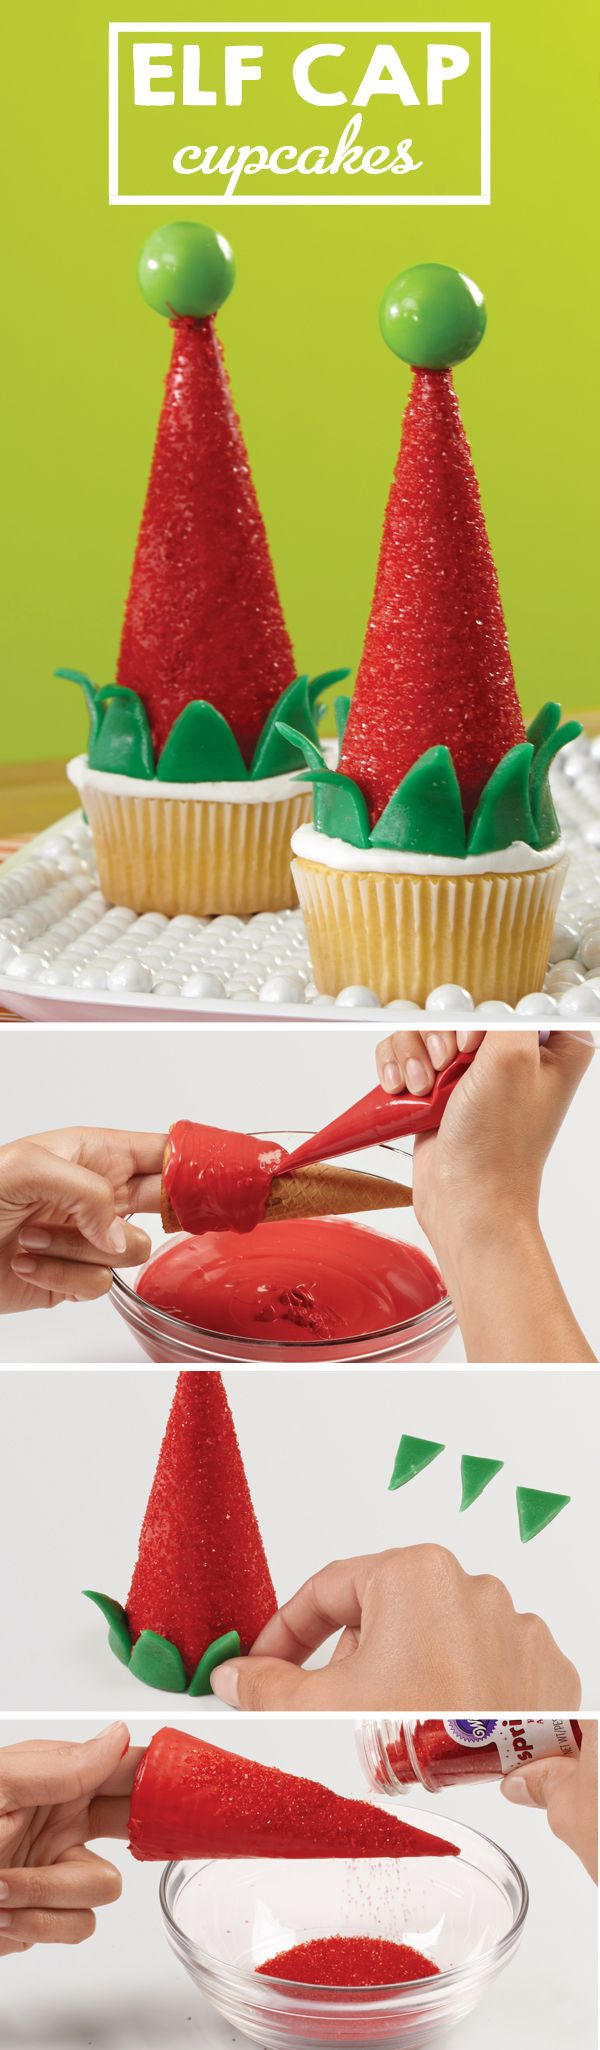 Make these cute Elf Cap Cupcakes with @partycity